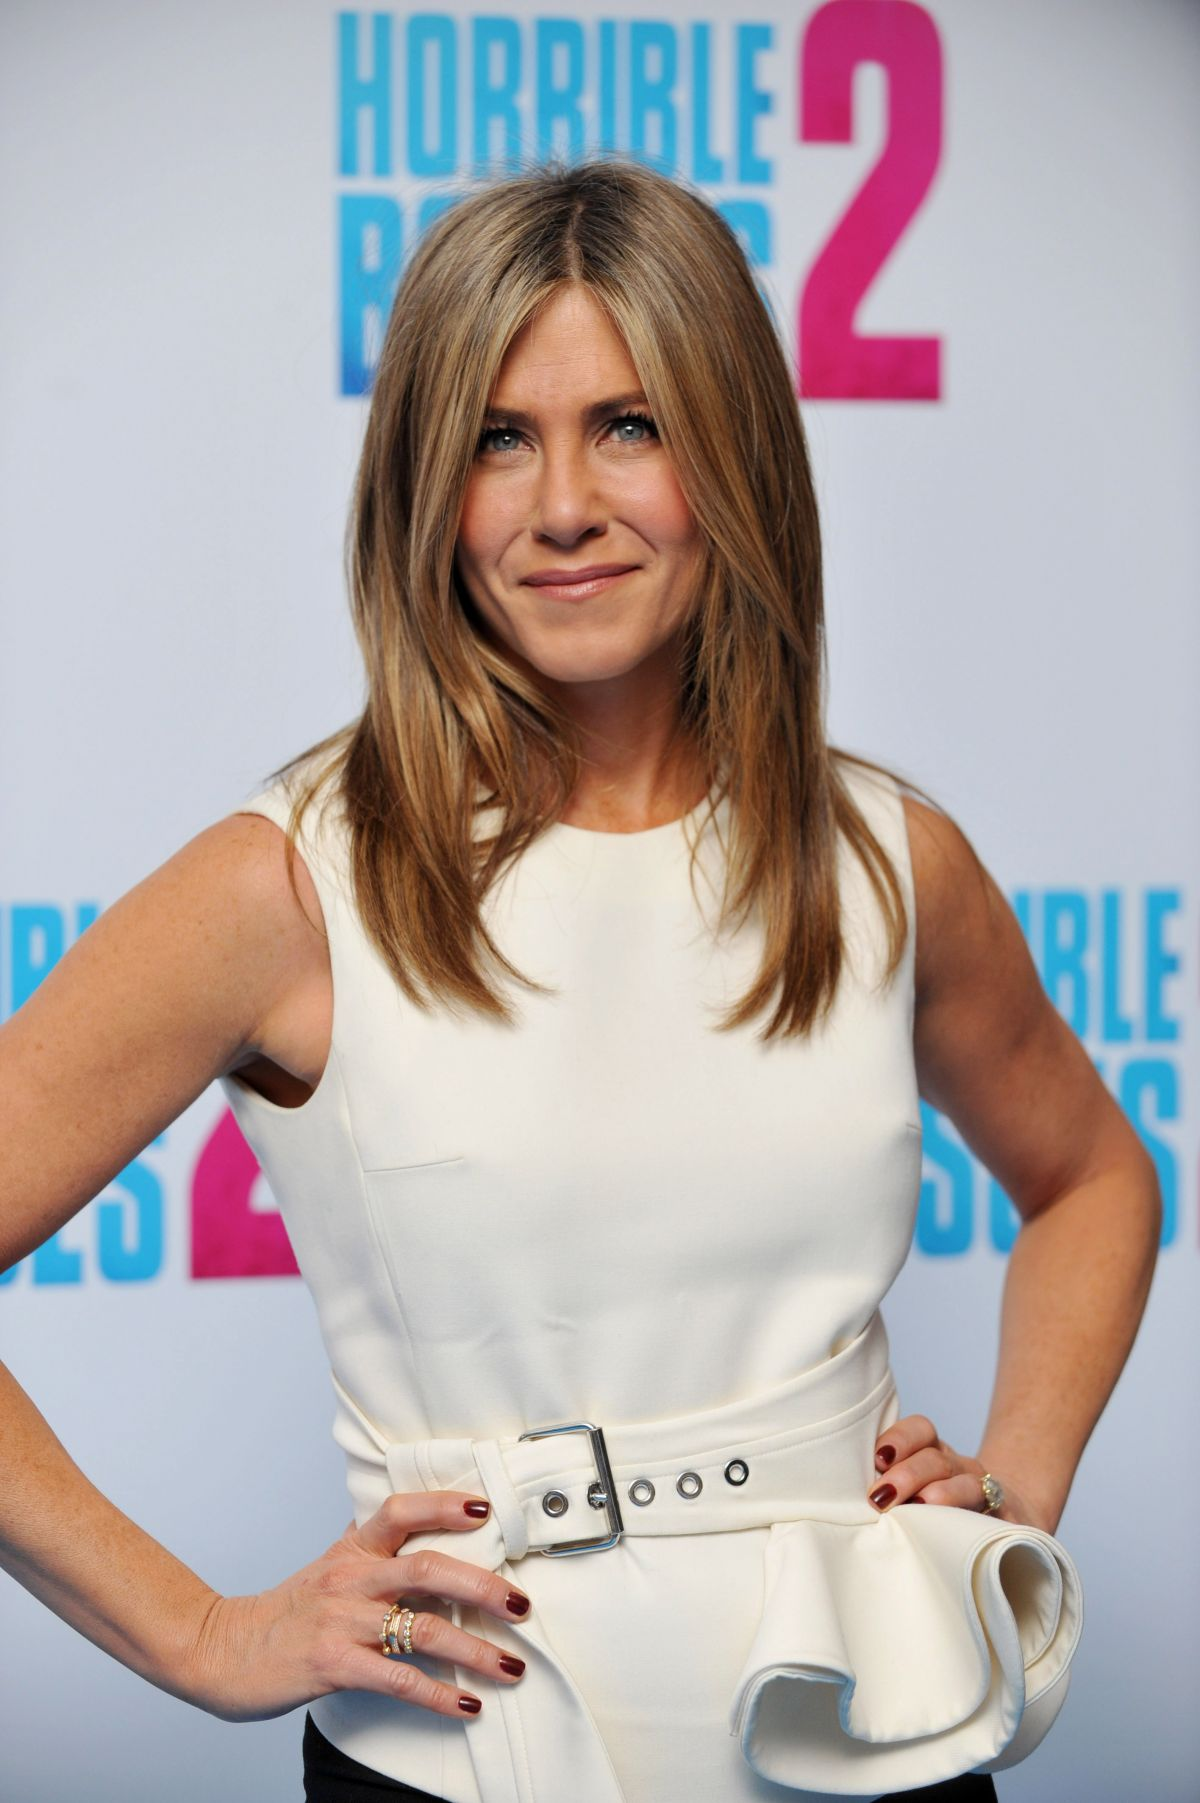 JENNIFER ANISTON at Horrible Bosses 2 Photocall in London